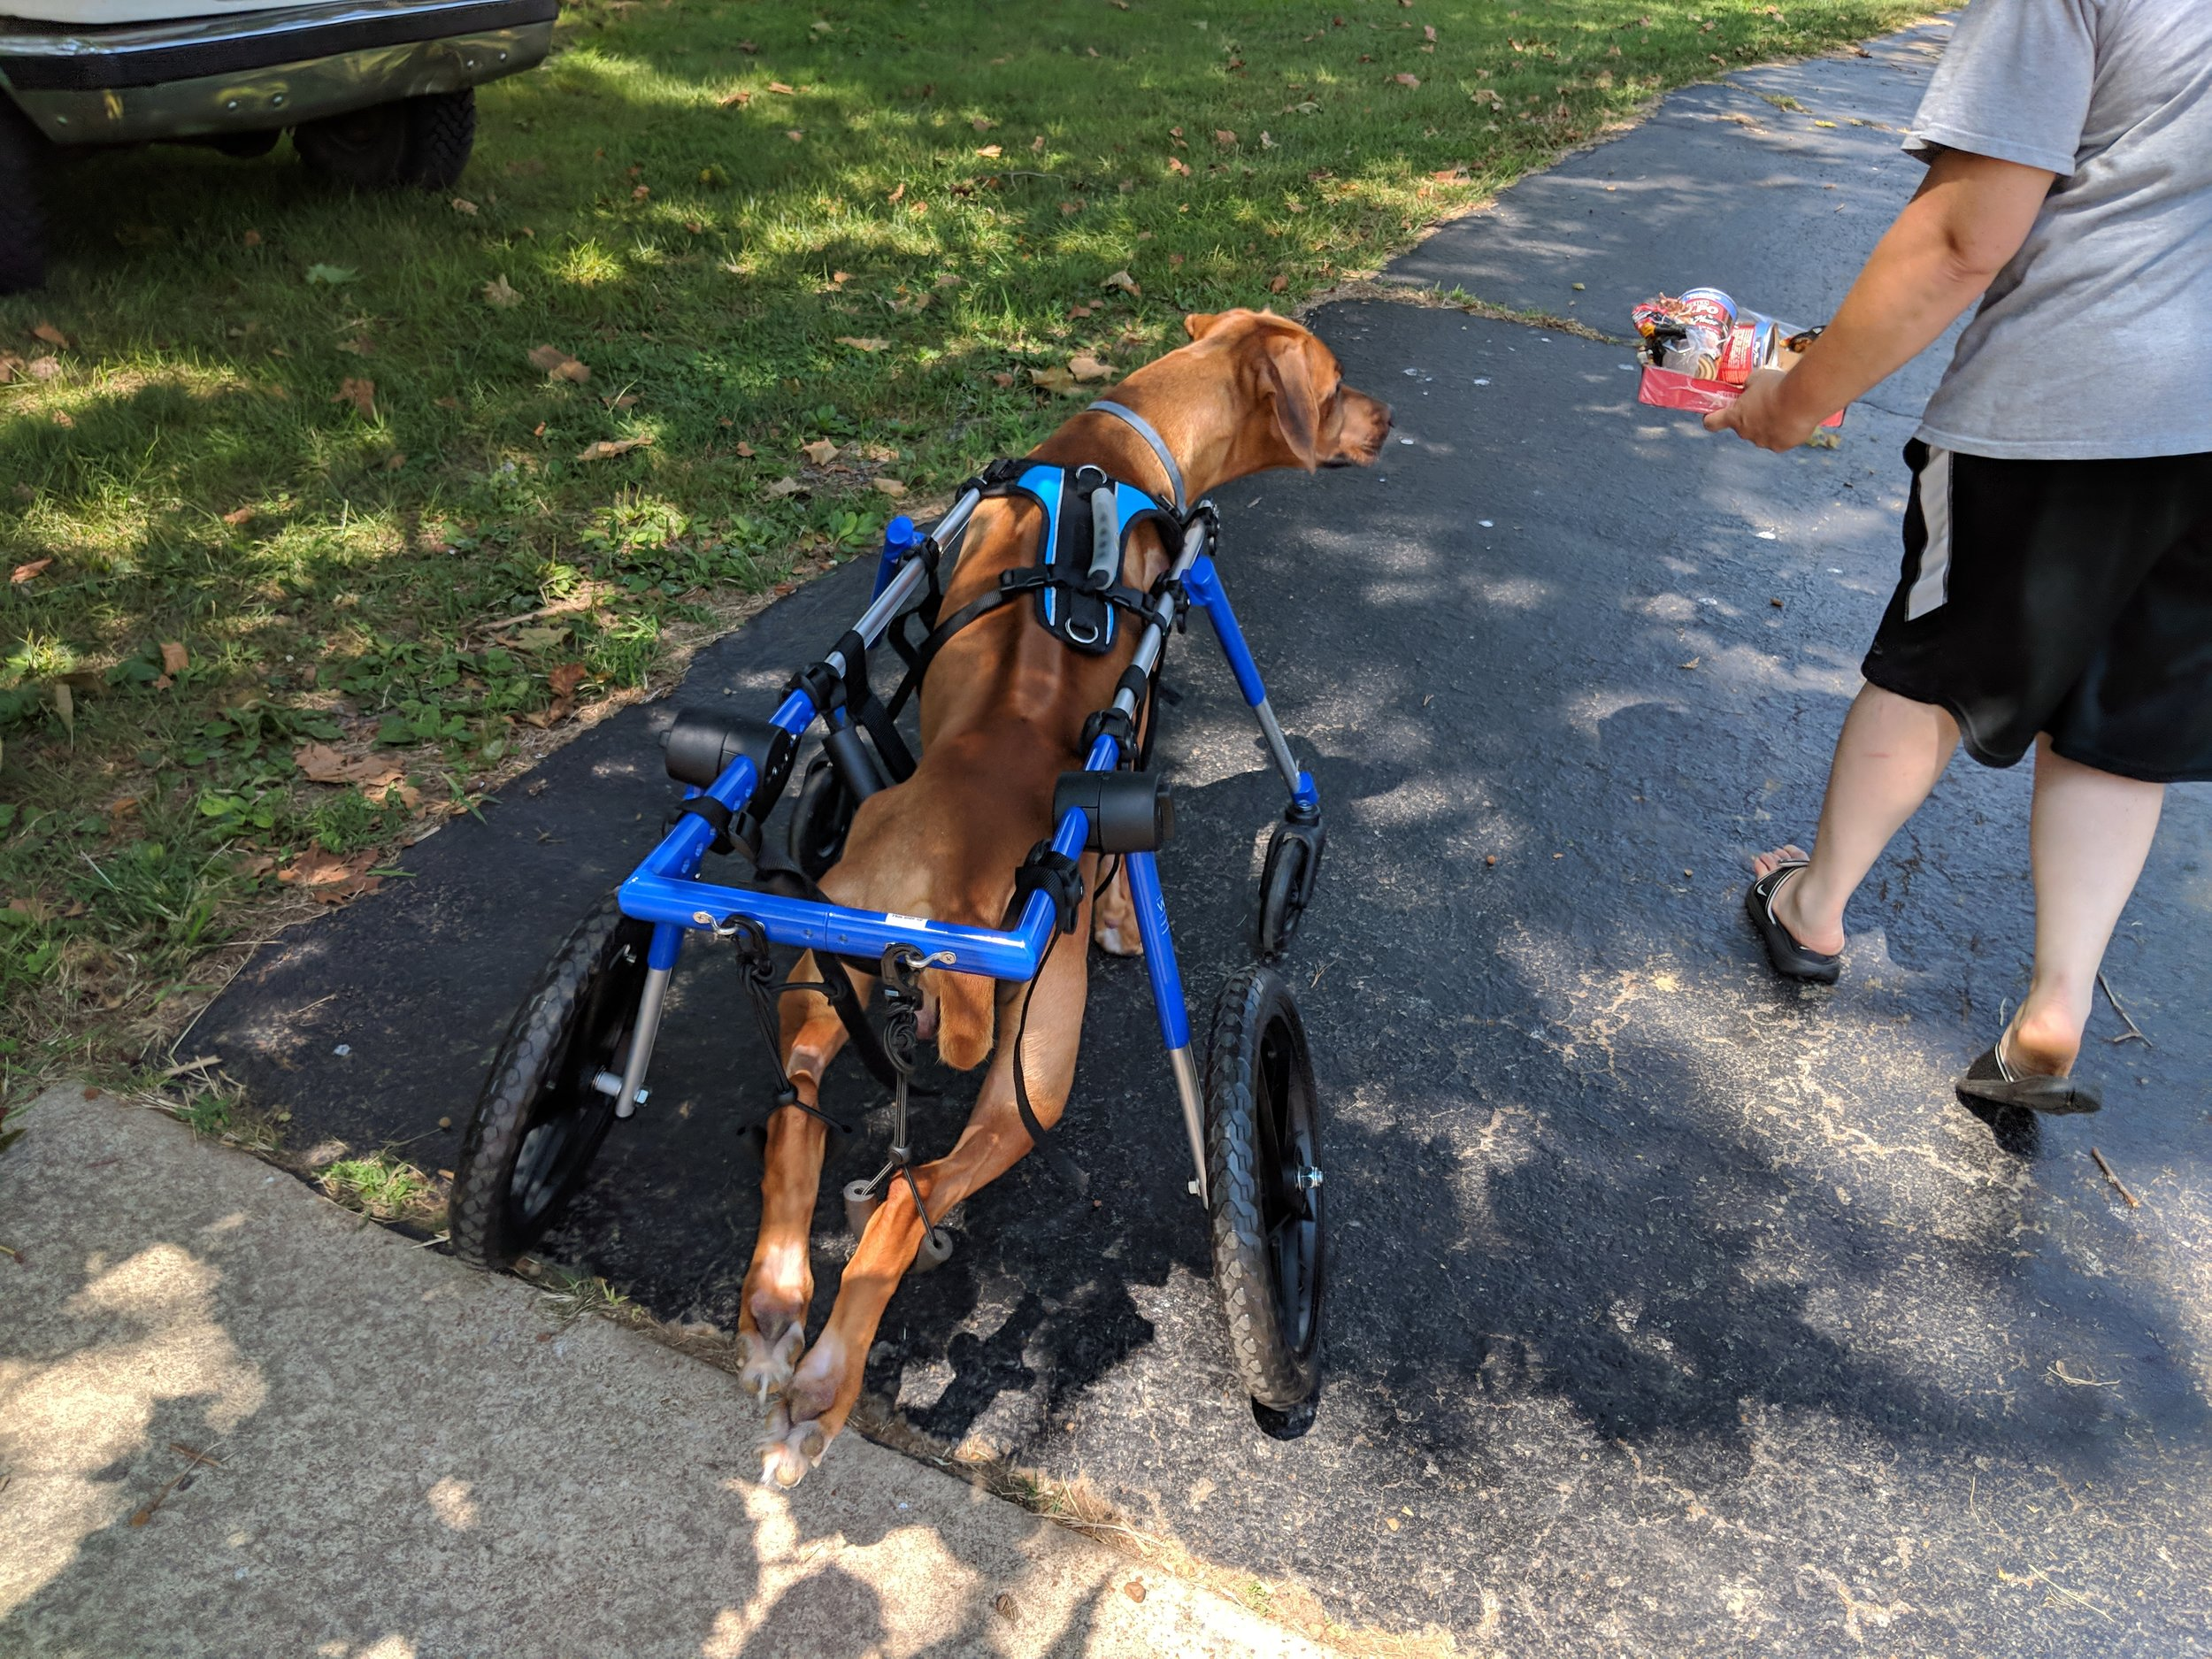 August 28, 2018: Thank you for this awesome service you do.  Archer is learning still but he is happy getting to be outside.